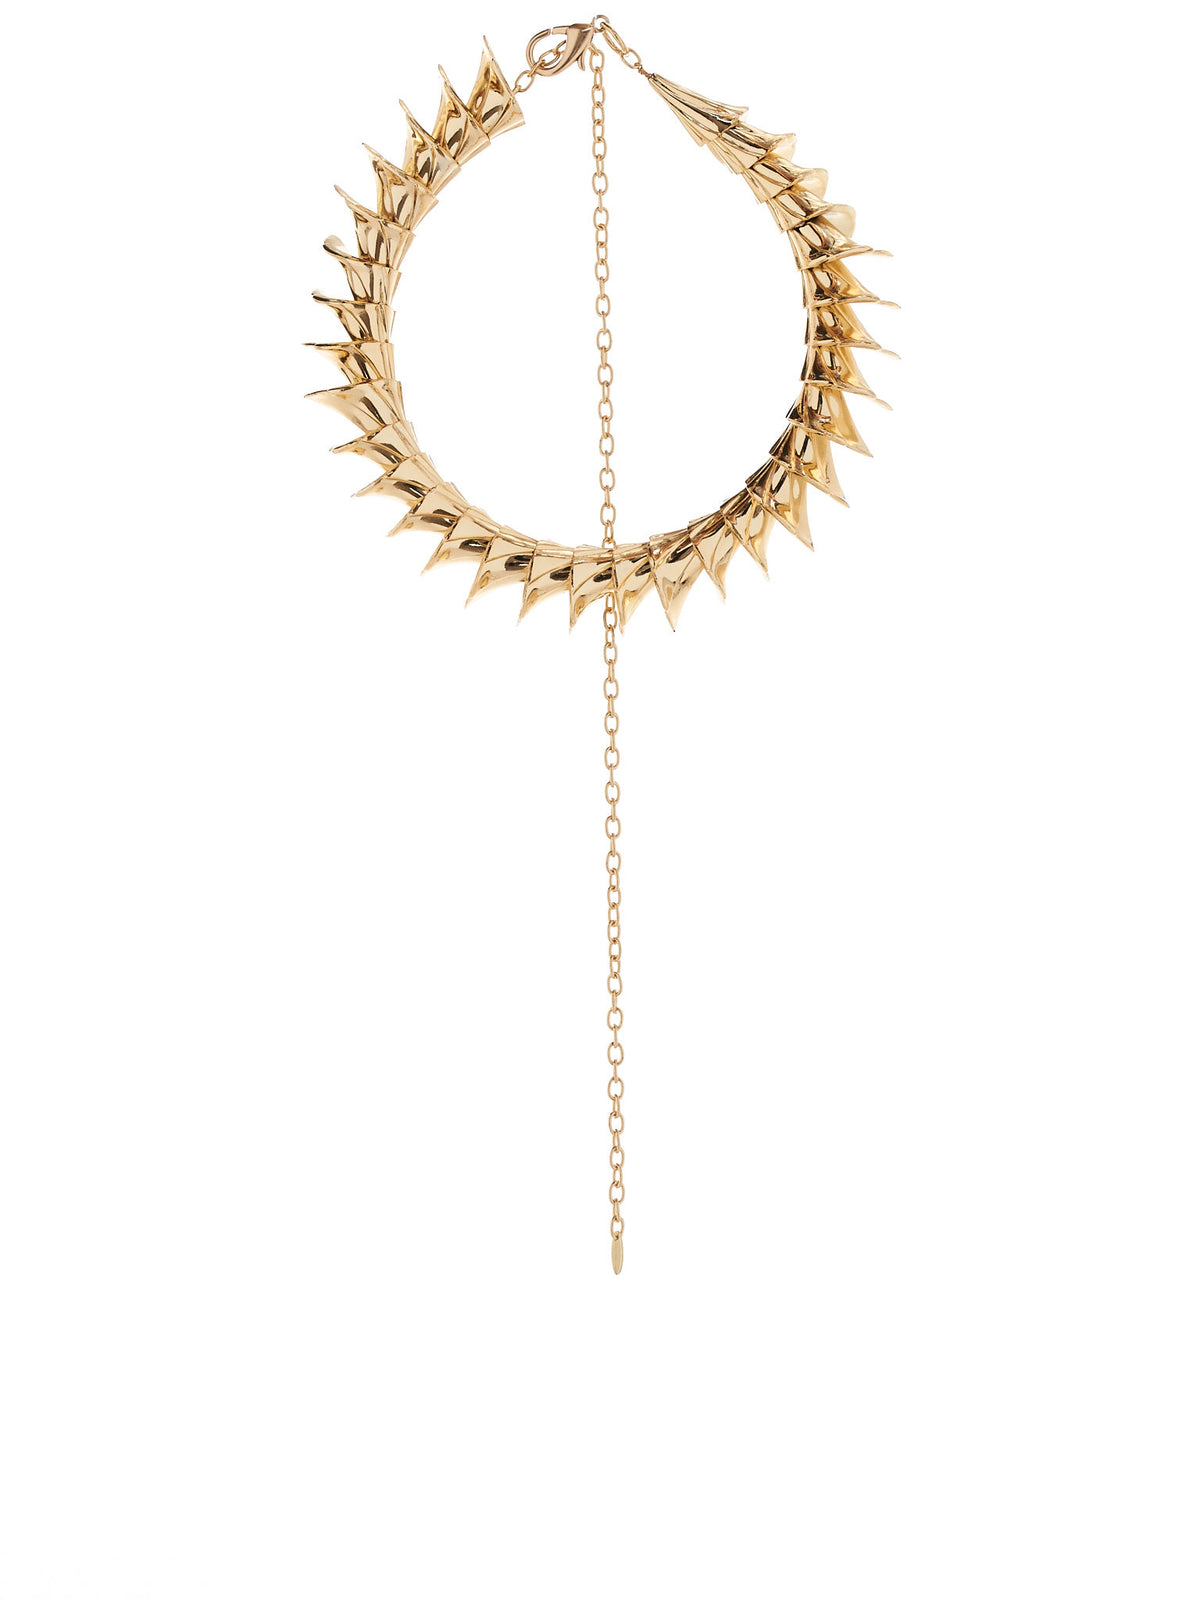 Veda Necklace (806-TG001-030-GOLD)